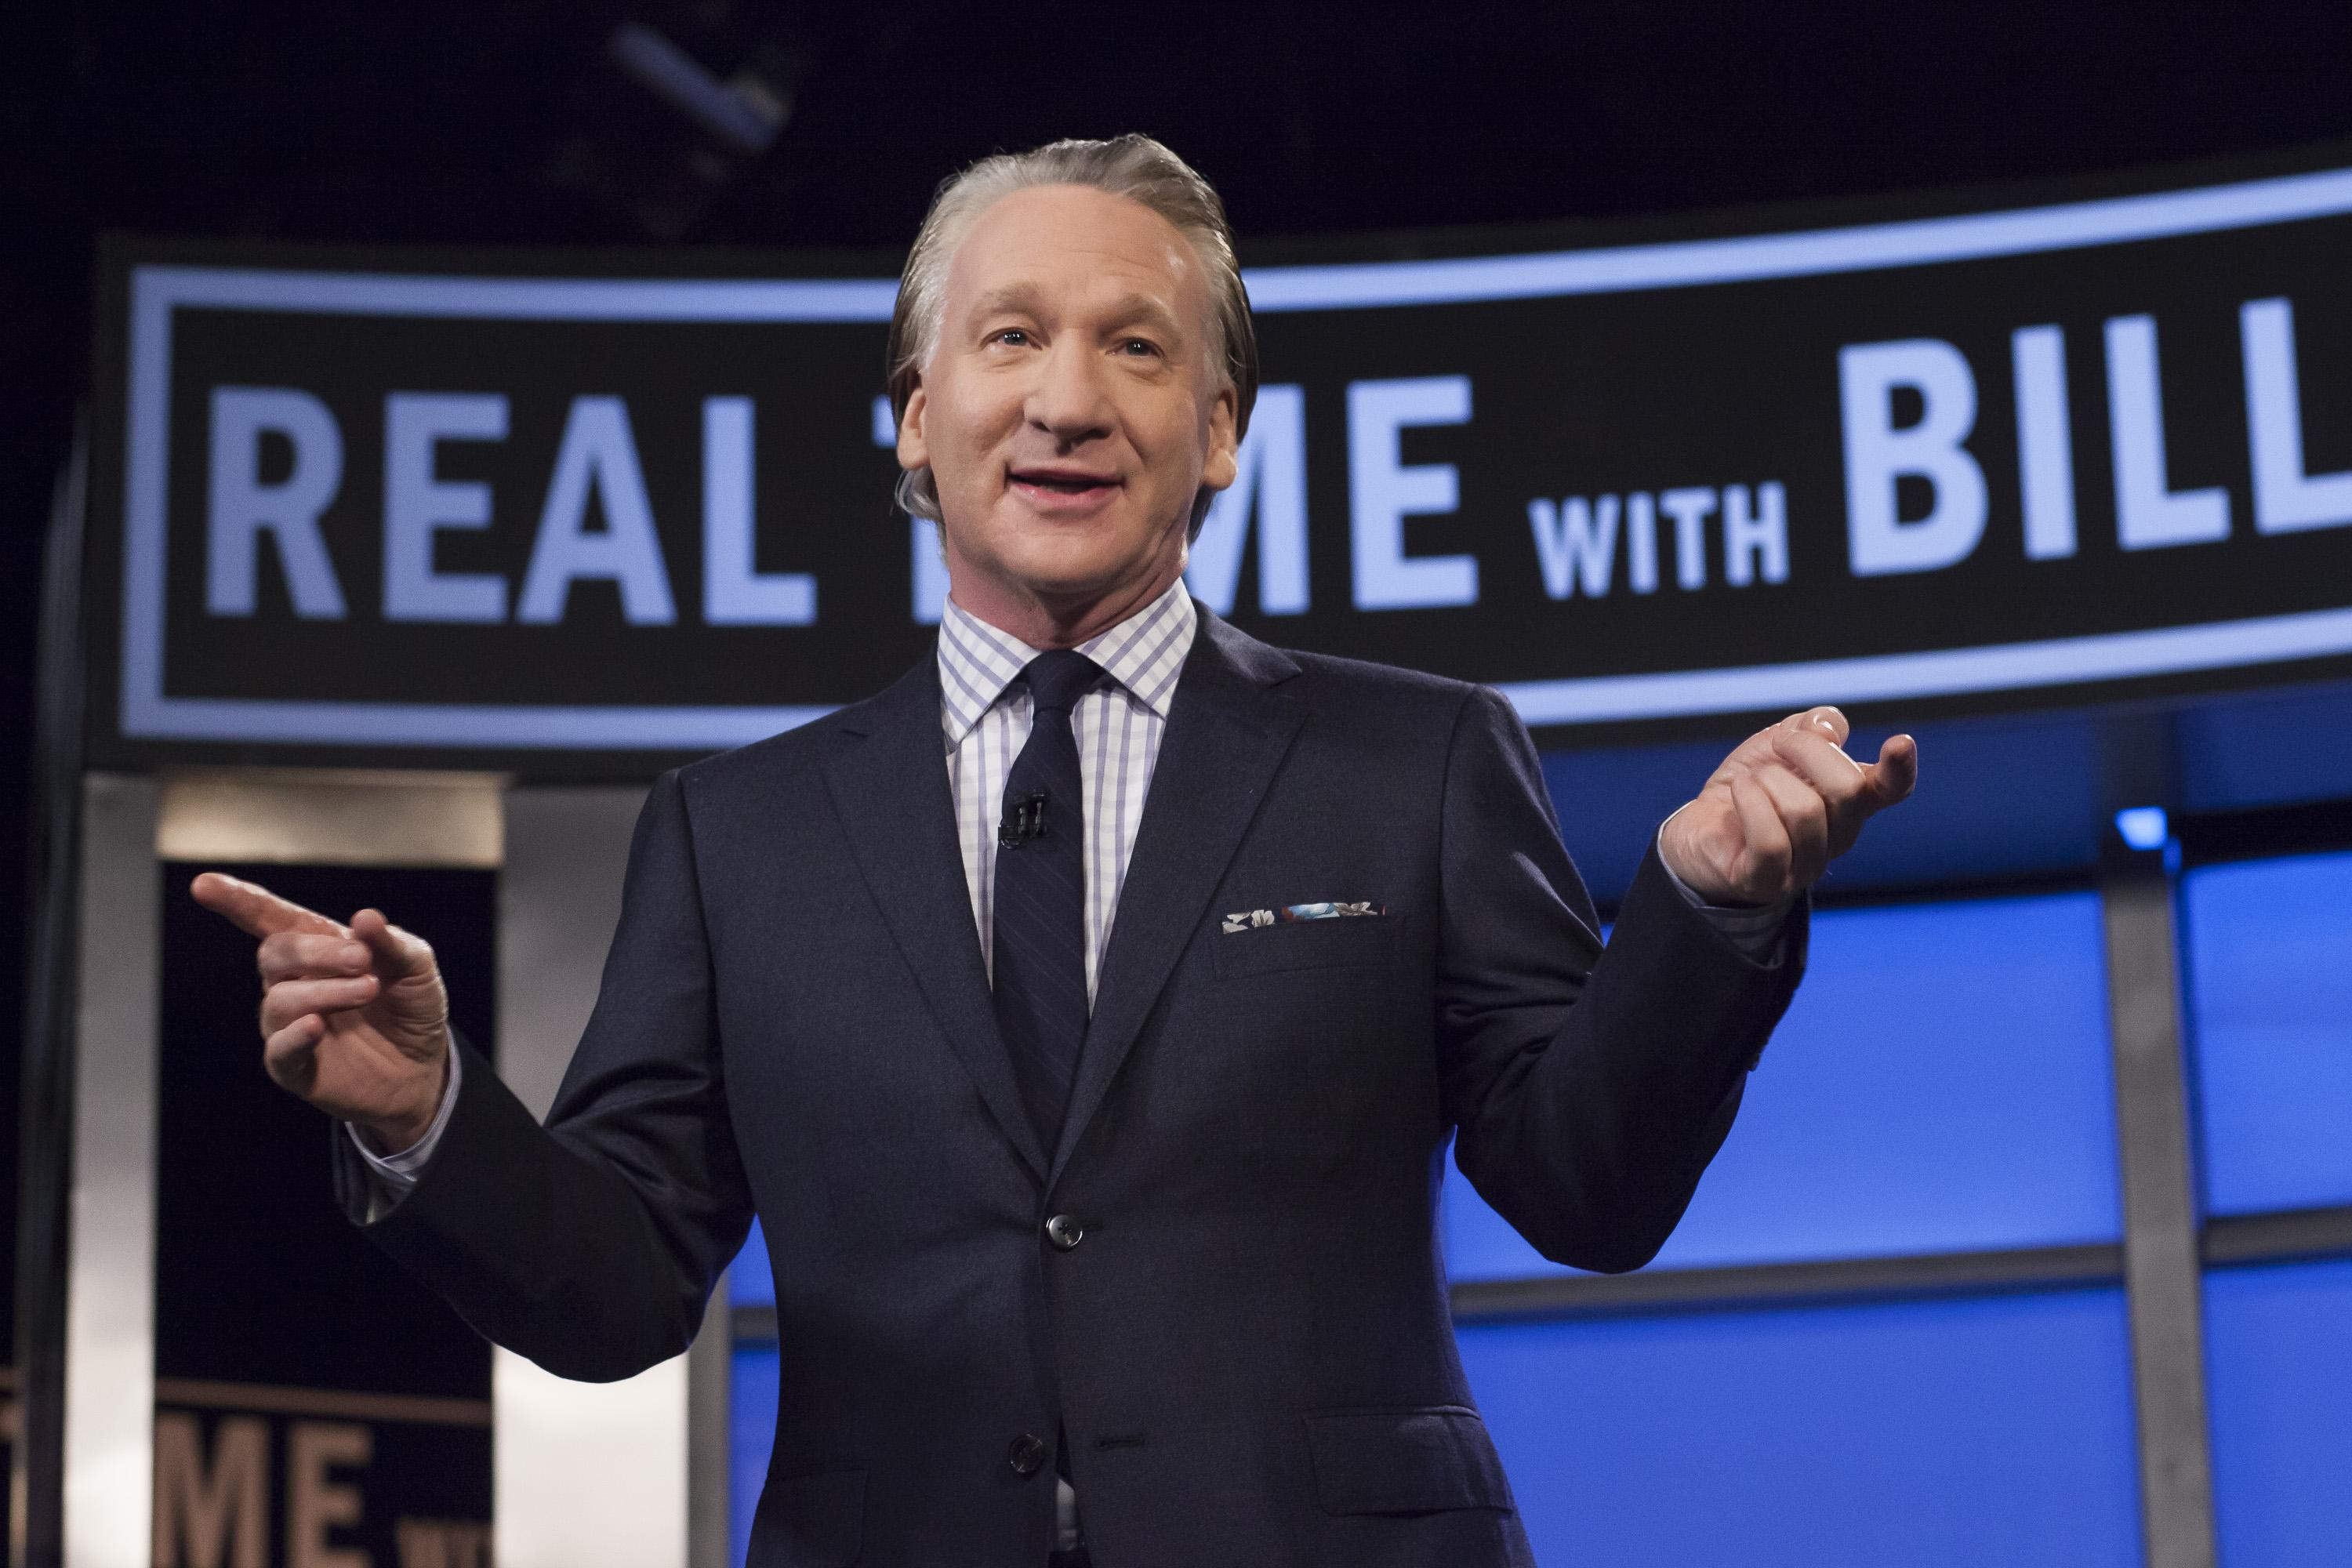 Bill Maher on Limbaugh cancer diagnosis: 'I'm not going to do jokes about that'